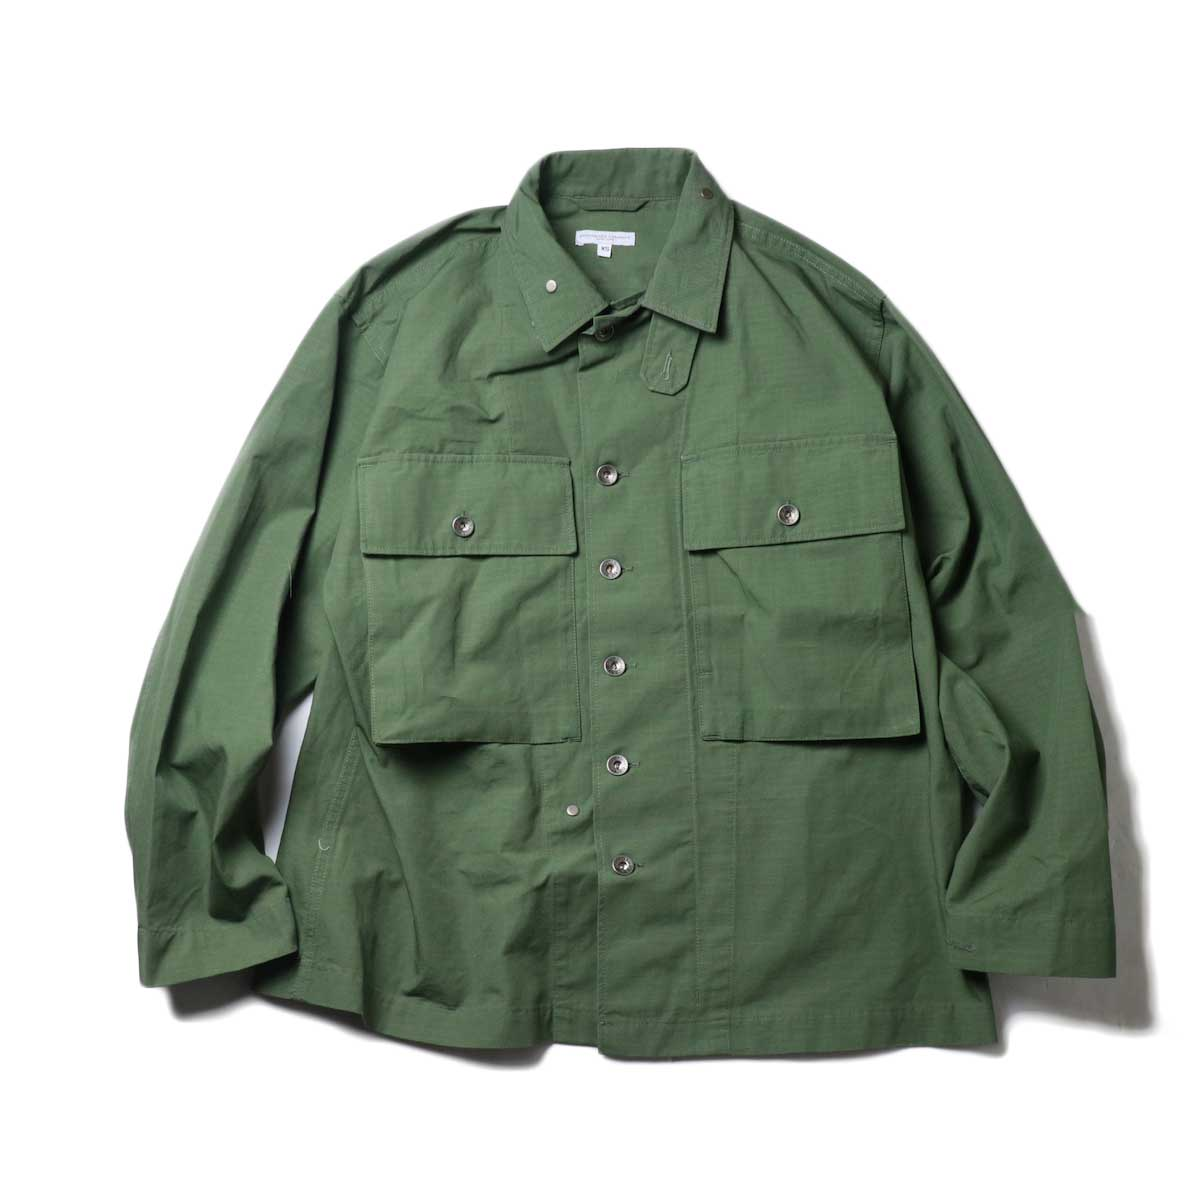 Engineered Garments / M43/2 Shirt Jacket -Cotton Ripstop (Olive)